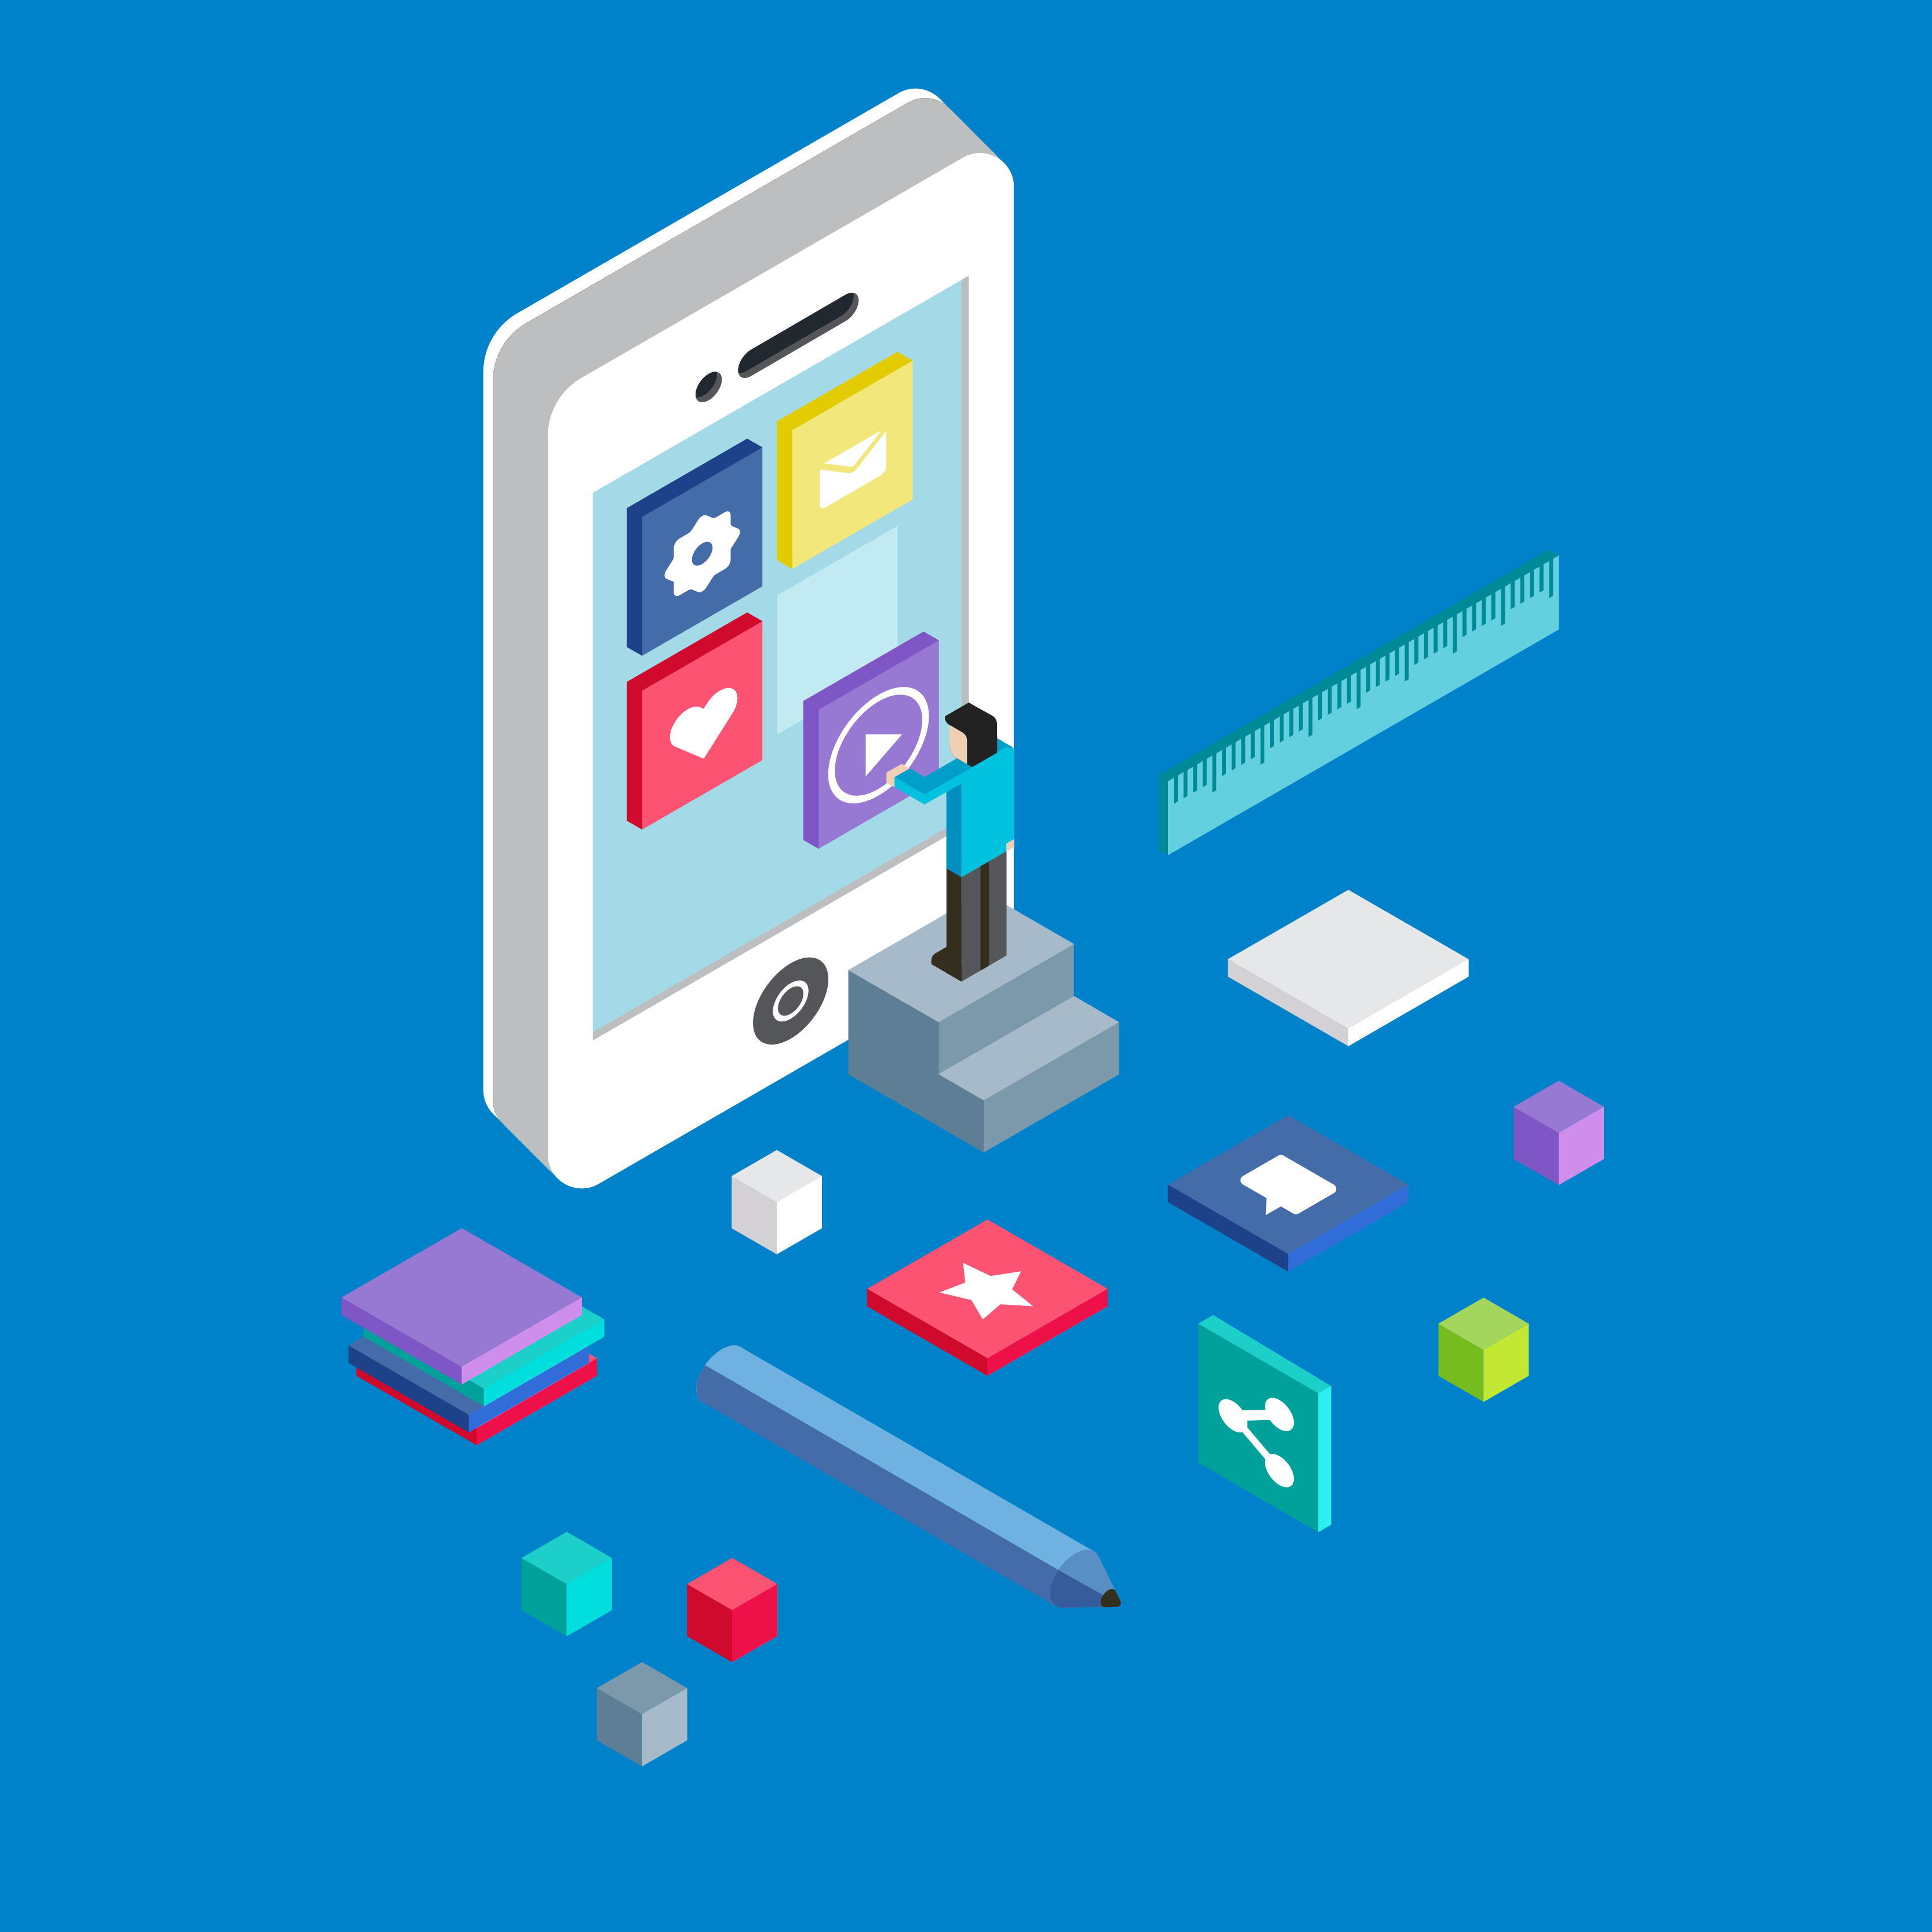 3 Questions to Ask When Starting on a Mobile App Project